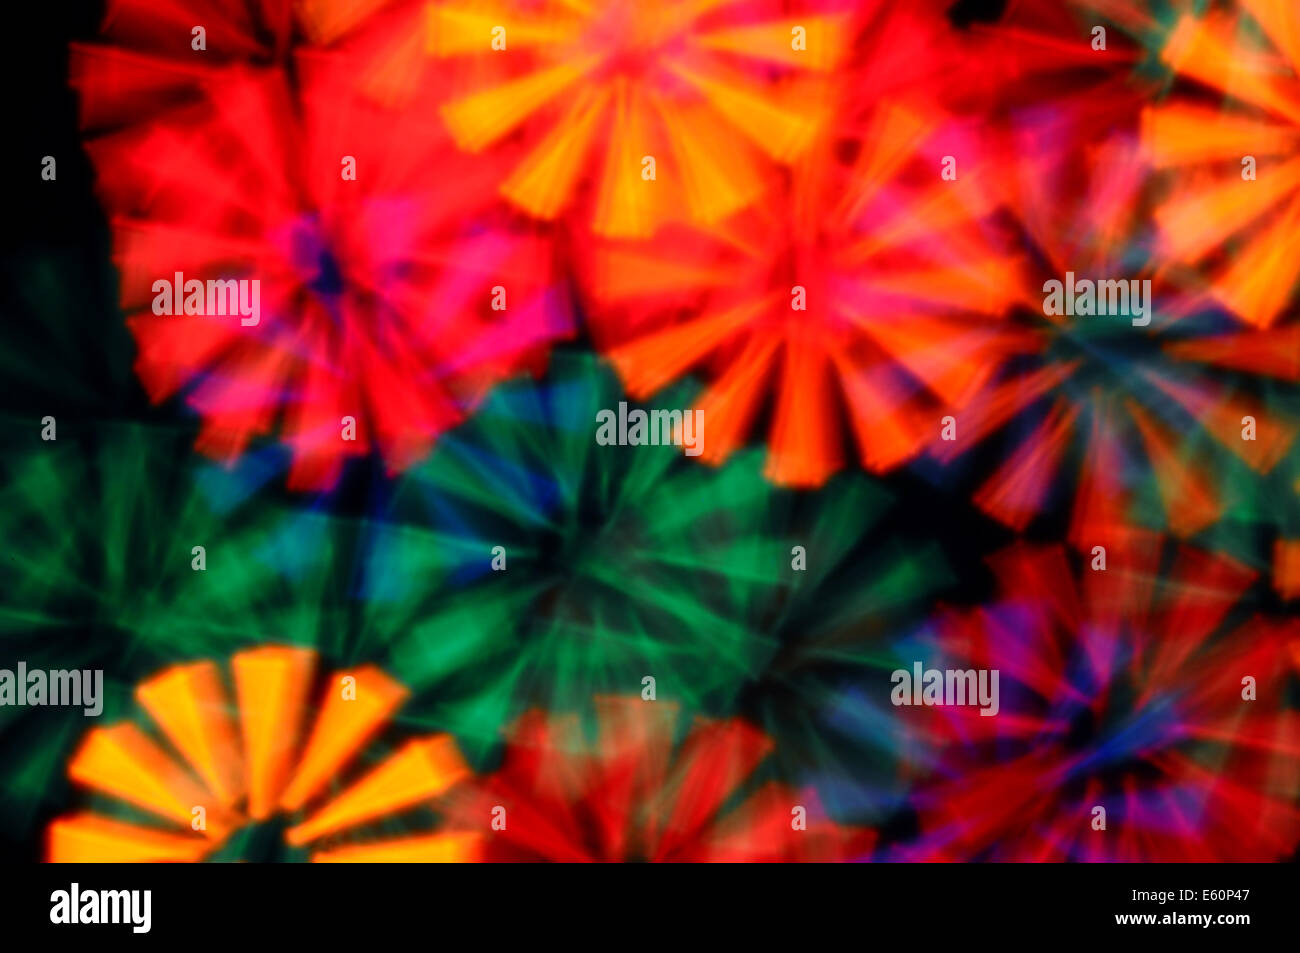 Colorful light rays abstract blurry circles psychedelic background. Stock Photo